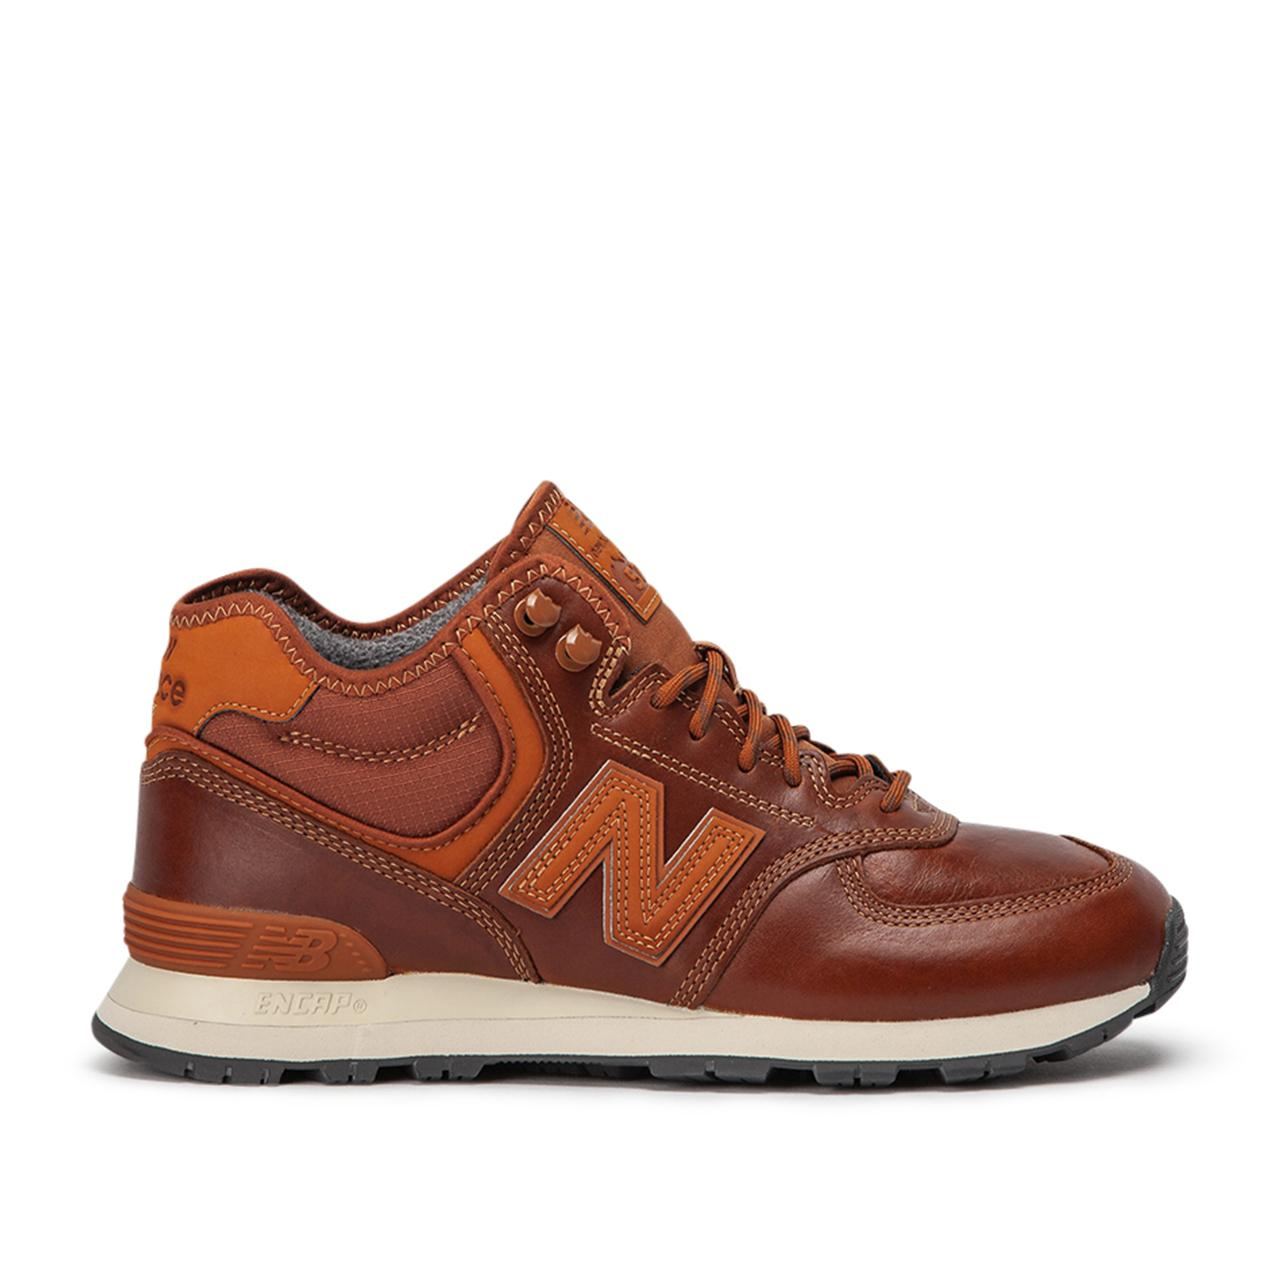 New Balance Leather Mh574 Oad in Brown for Men - Lyst